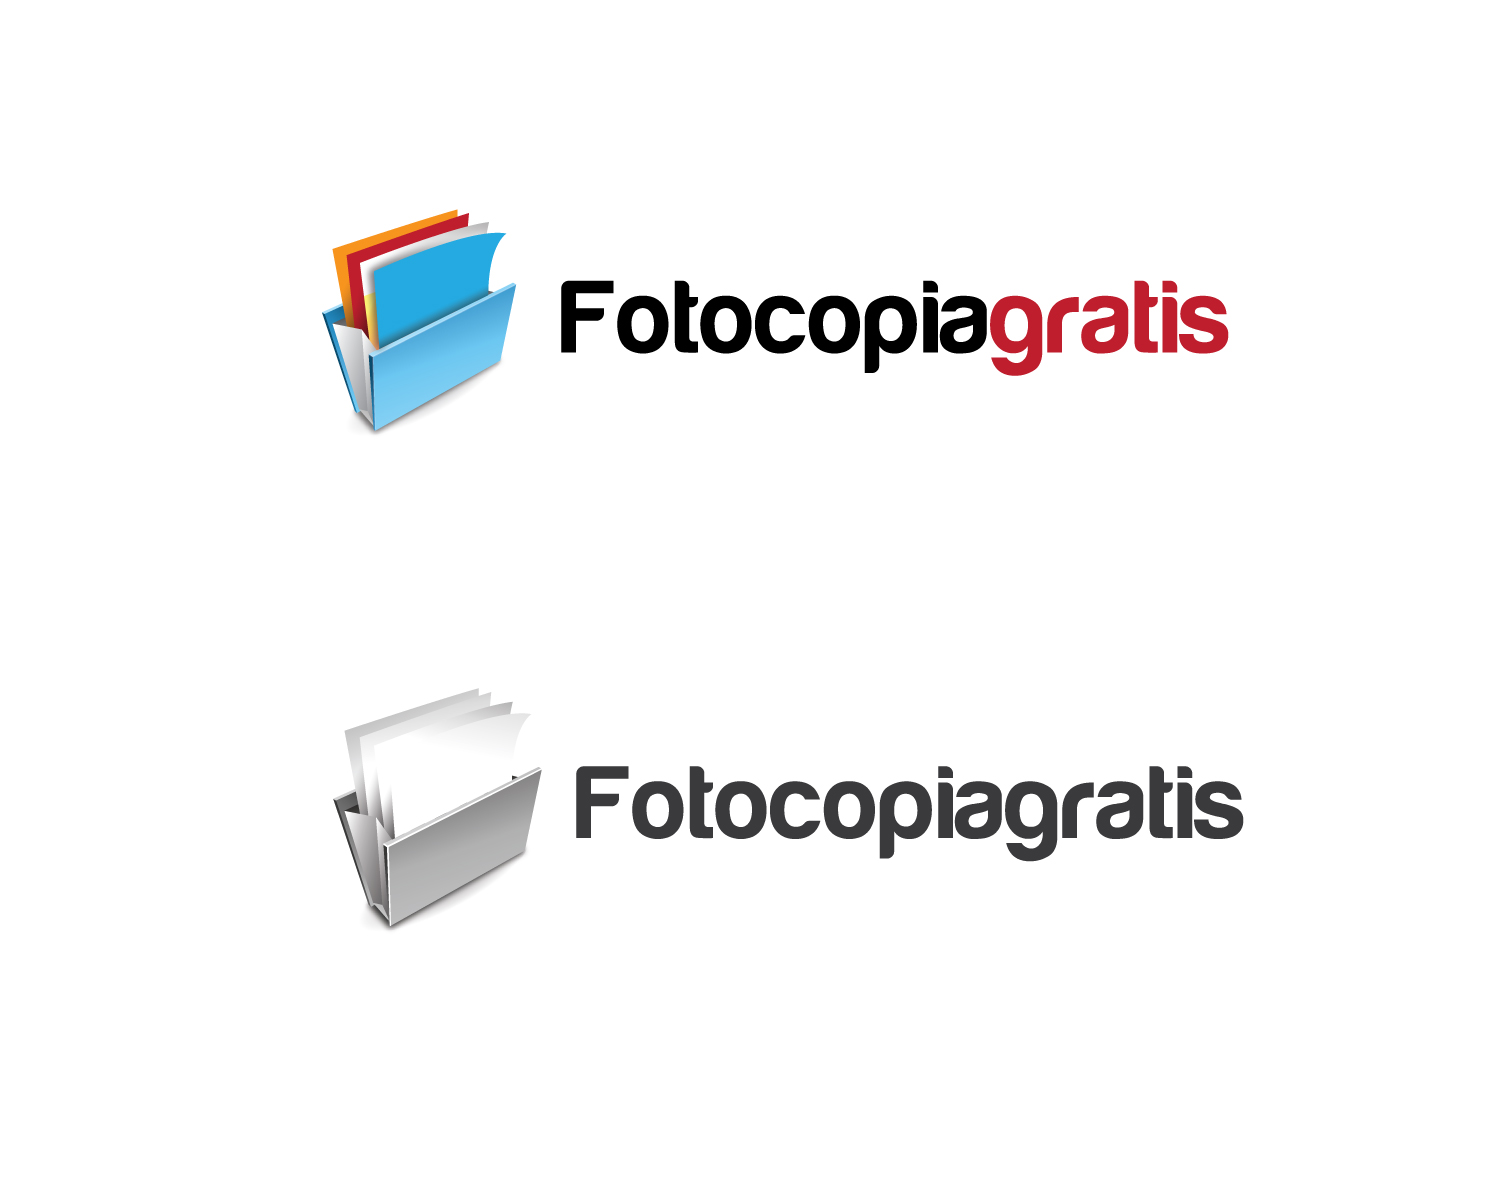 Logo Design by Jagdeep Singh - Entry No. 191 in the Logo Design Contest Inspiring Logo Design for Fotocopiagratis.